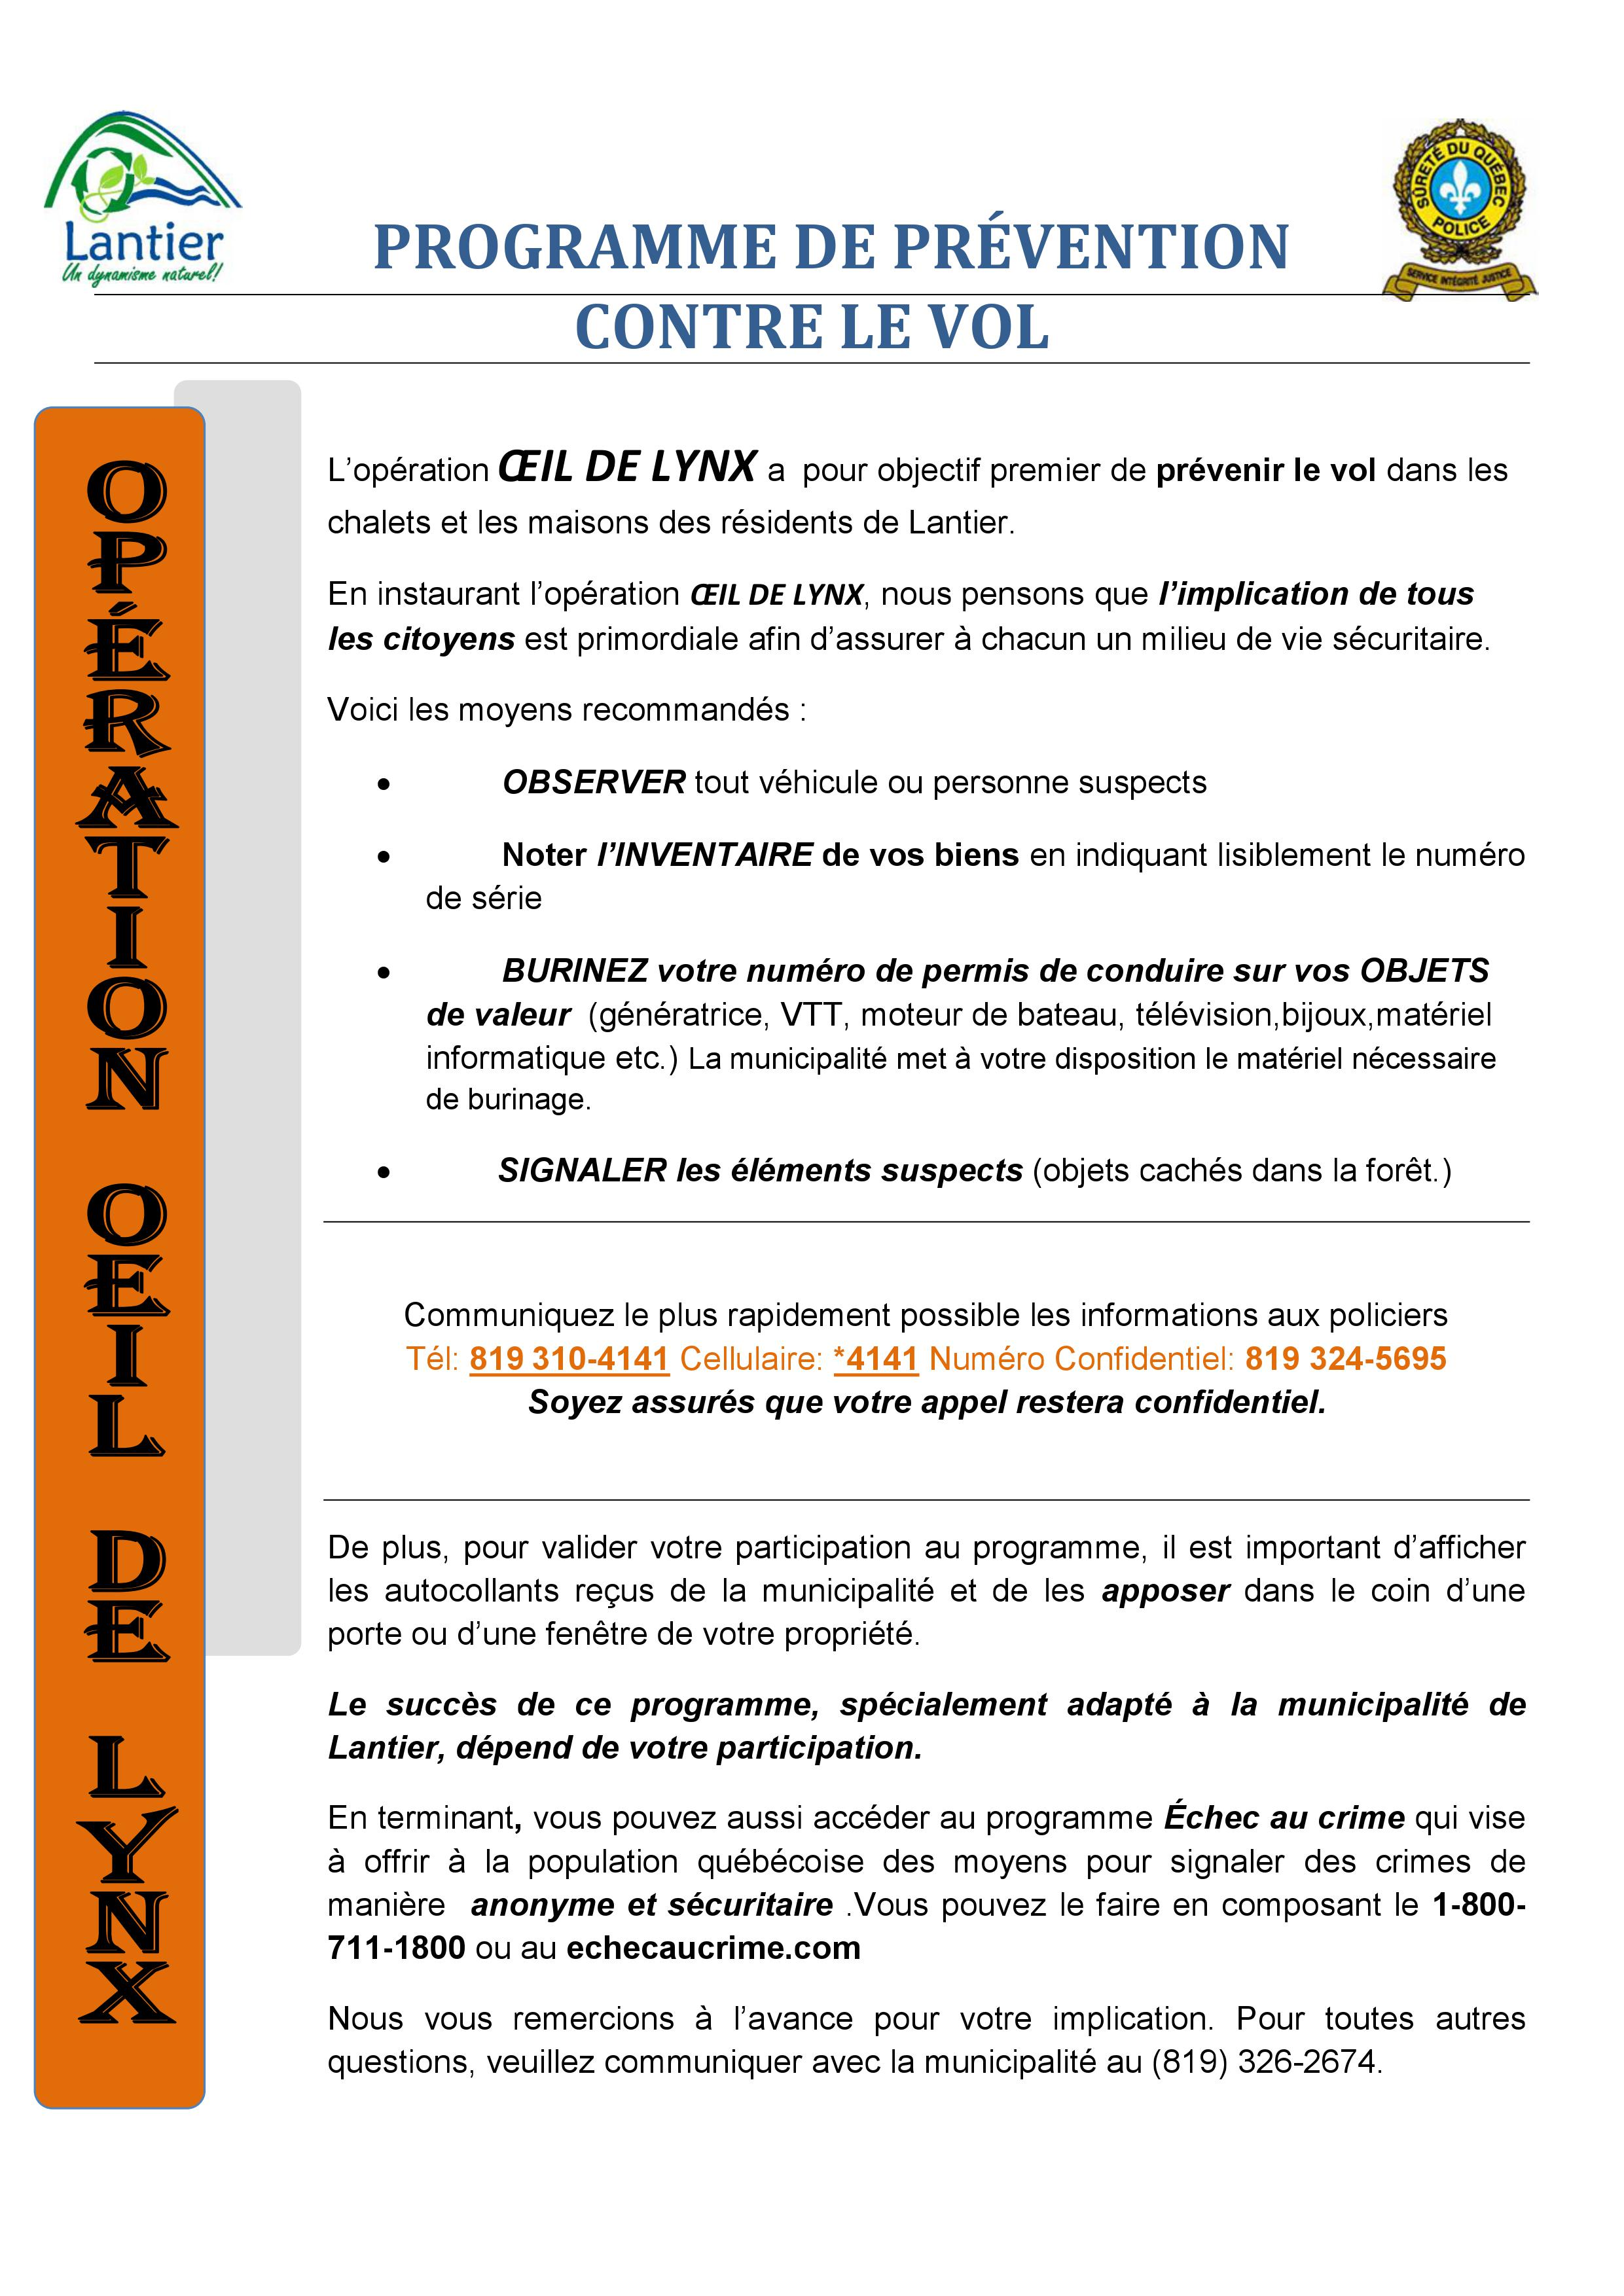 programme-prevention-vol-oeil-de-lynx-lantier